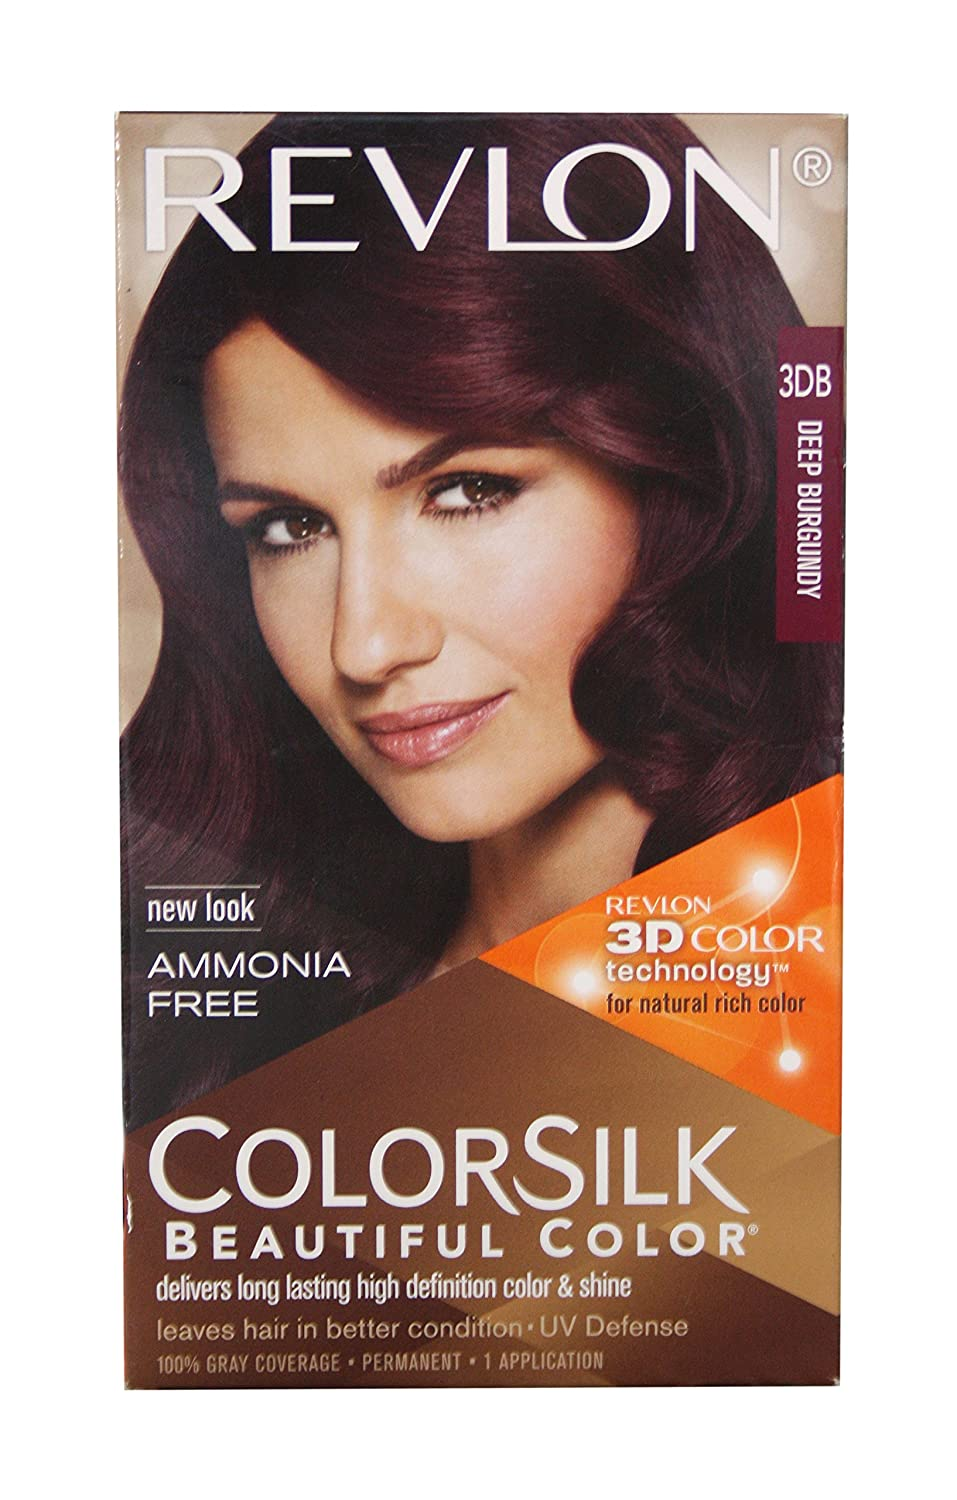 Loreal hair color quiz - Buy Revlon Colorsilk Hair Color With 3d Color Technology Dark Brown 3n 100g Online At Low Prices In India Amazon In